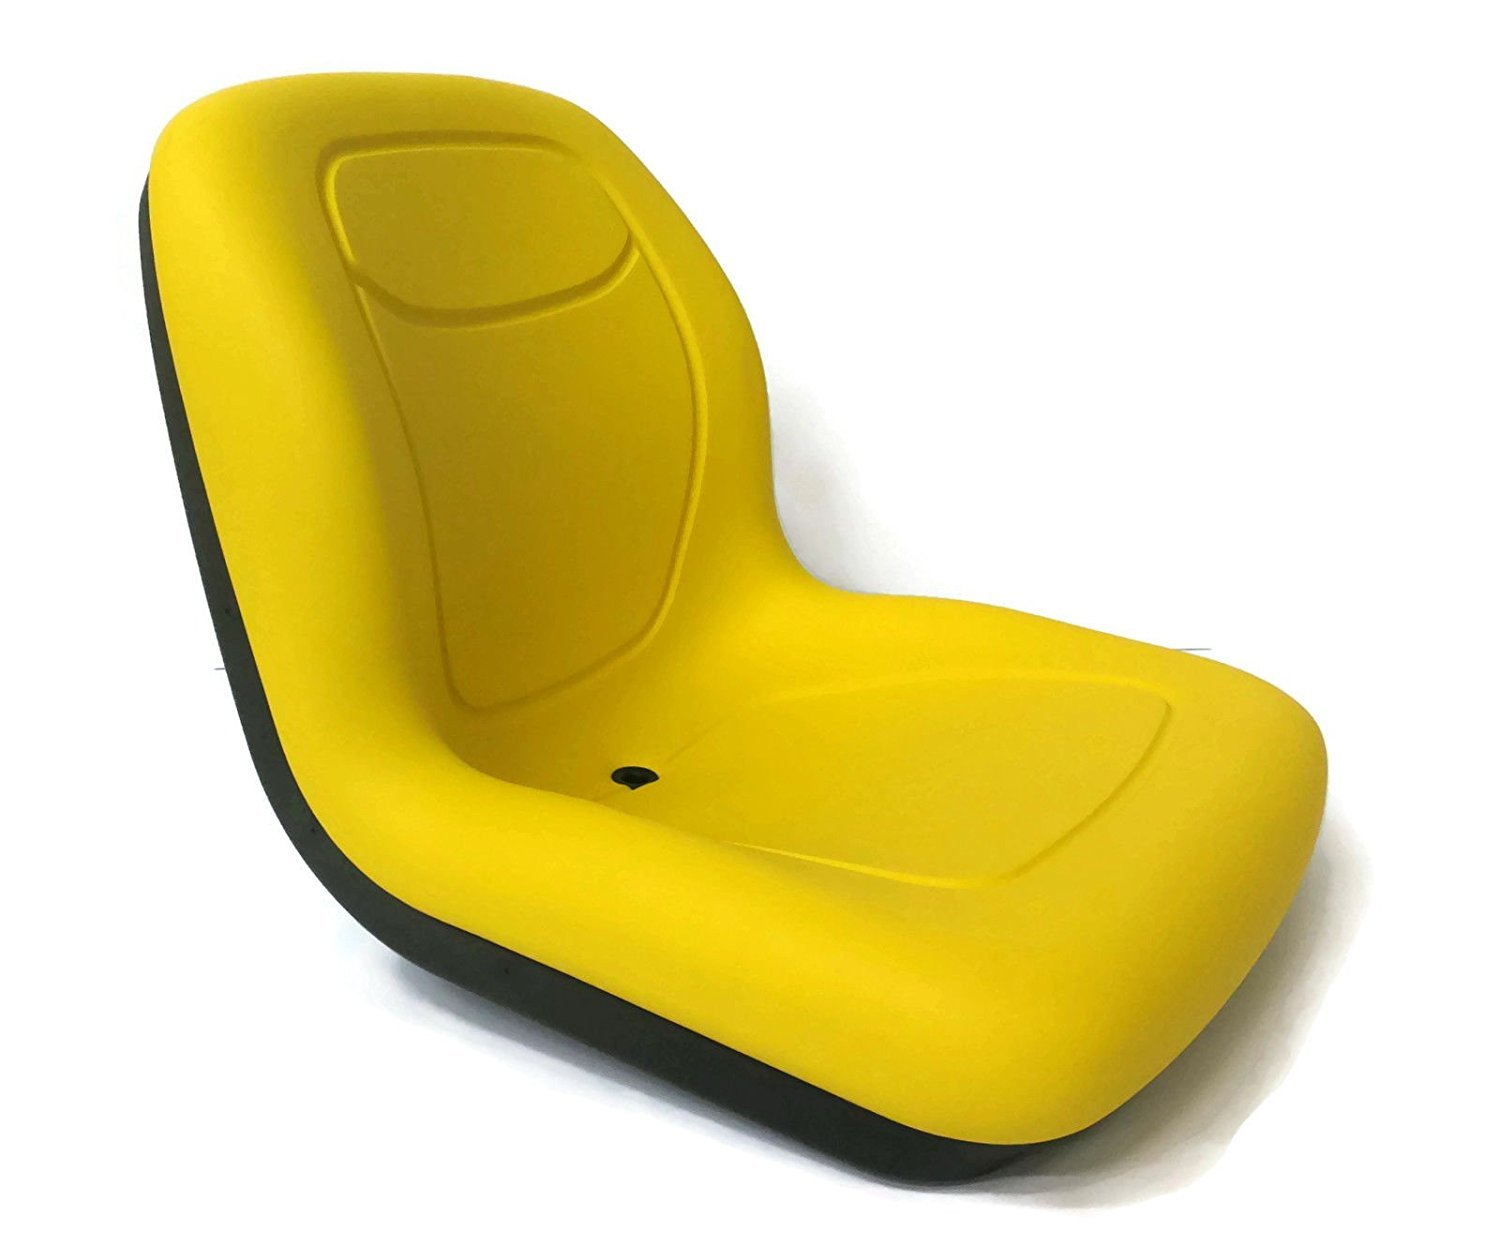 New Yellow HIGH BACK SEAT for John Deere Lawn Mower Models L100 L105 L107 L110 ,,#id(theropshop; TRYK130271625828623